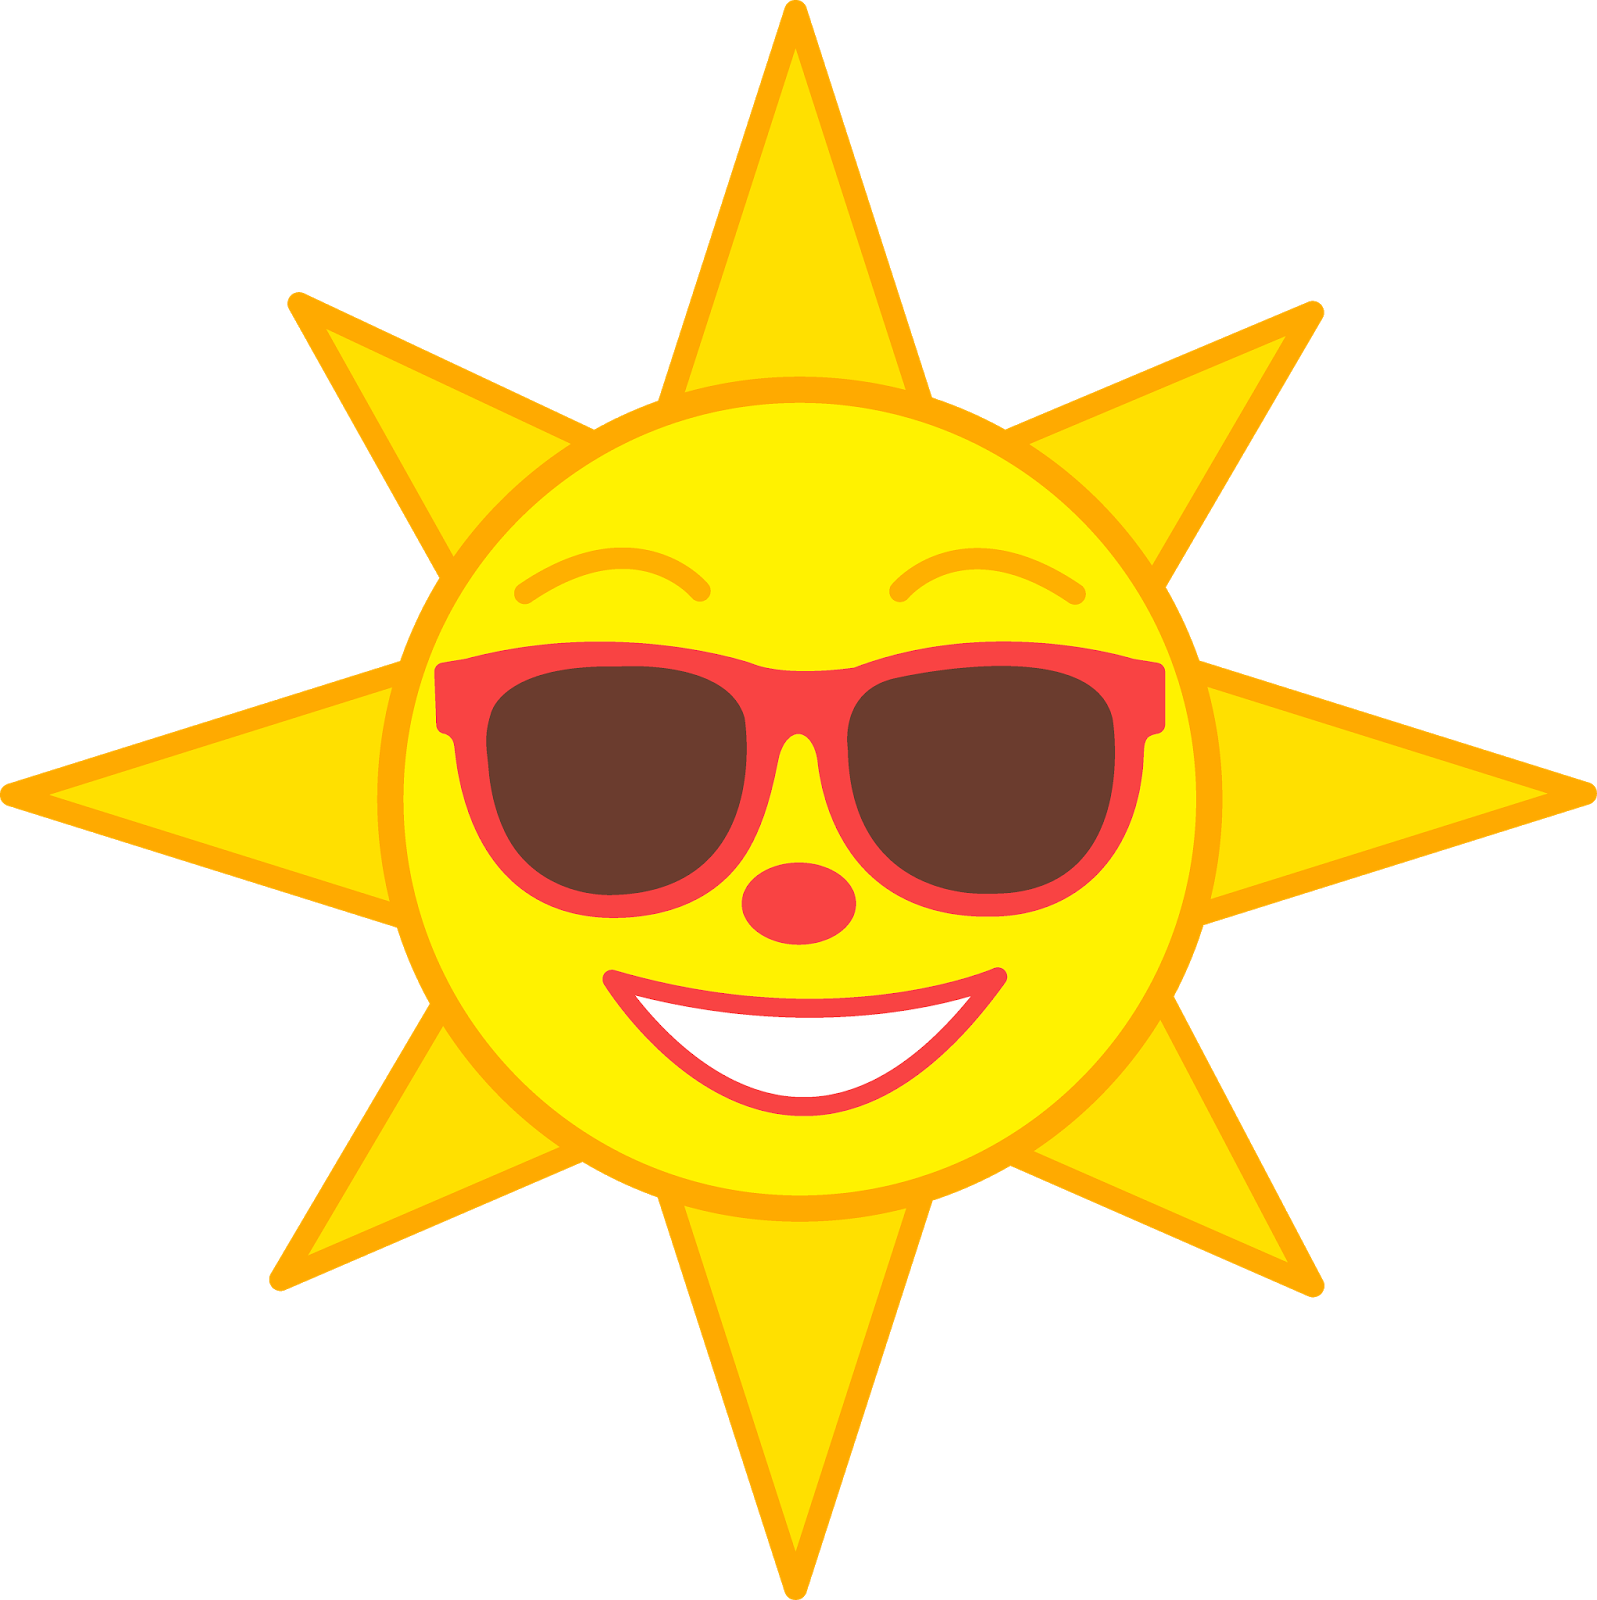 Sun and stars clipart black and white jpg free Clipart sun in your eyes jpg free